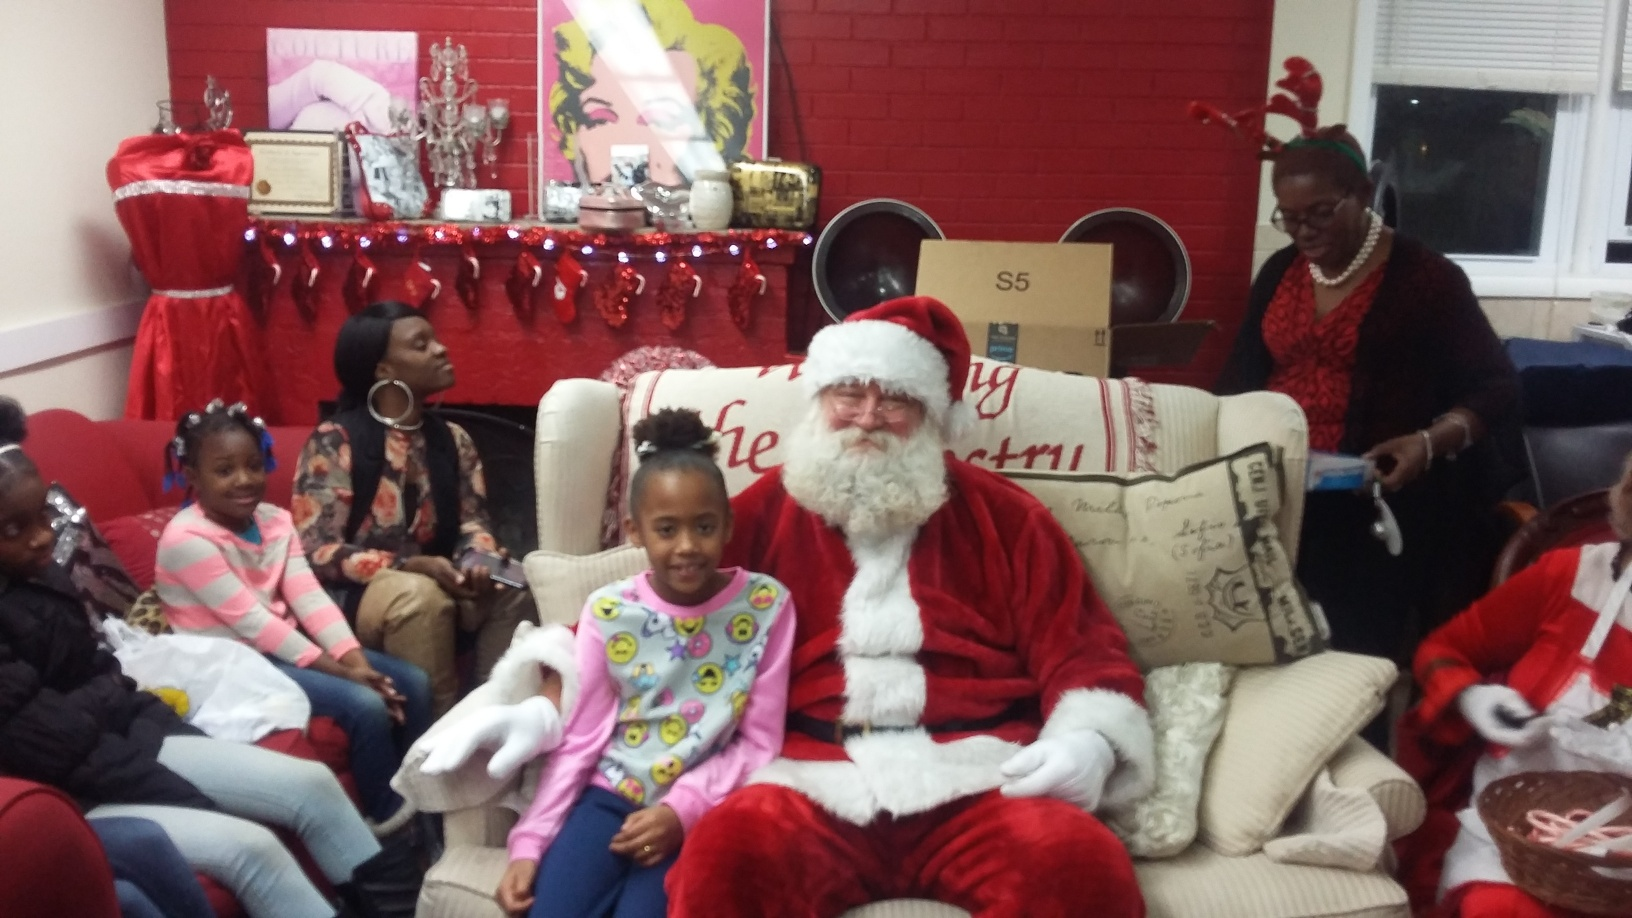 SANCTUARY FOUNDATION'S HOLIDAY EVENT WITH SANTA